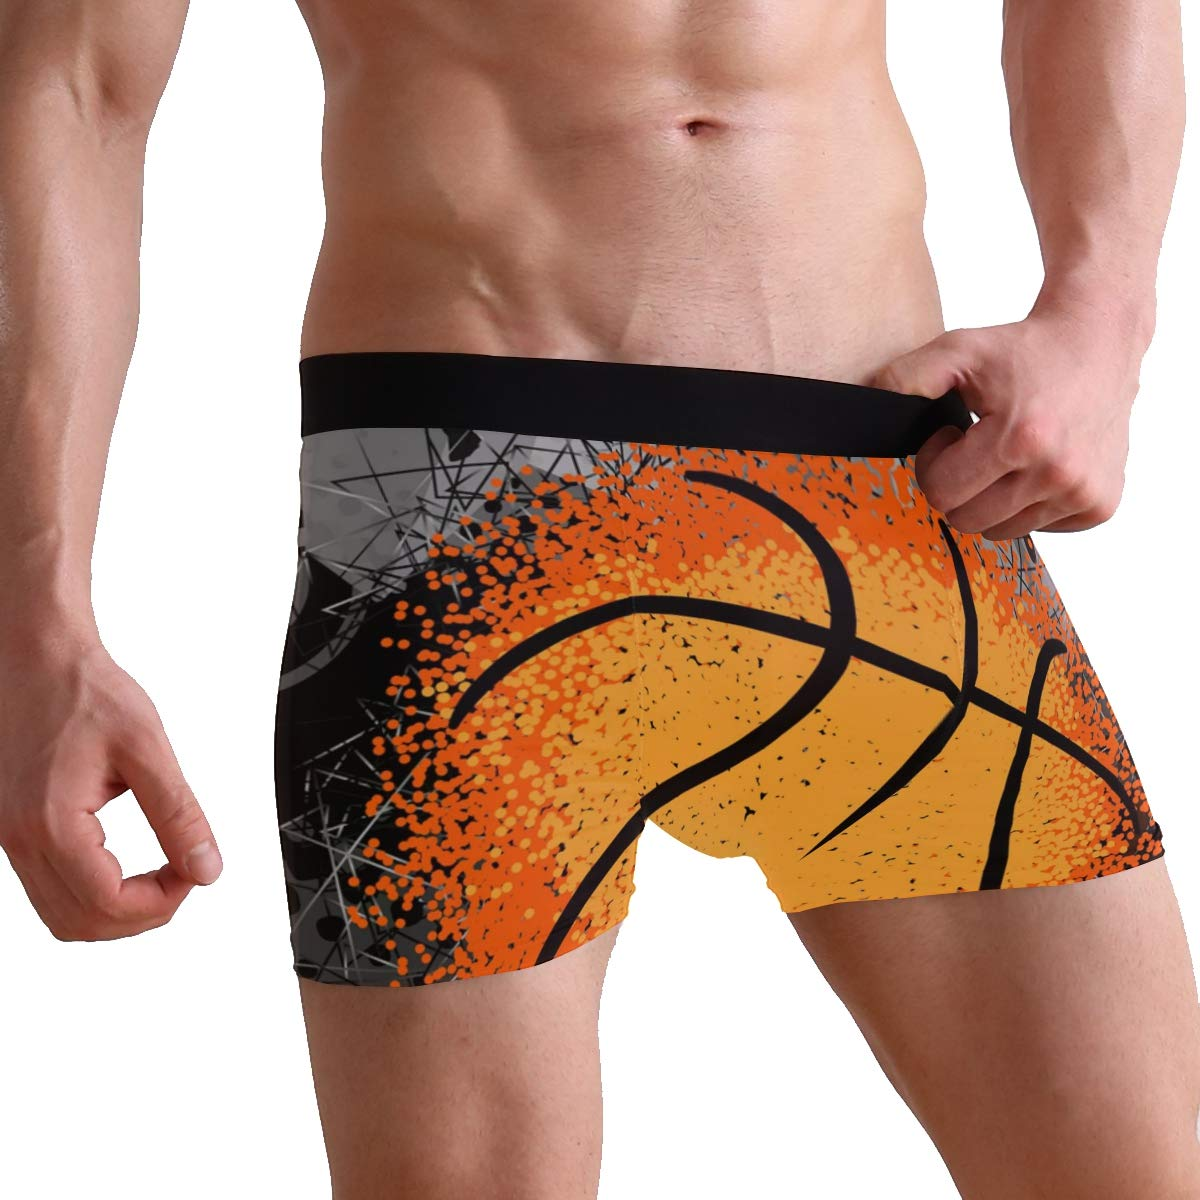 Basketball and Player Boxer Briefs for Men Mens Comfortable Underwear